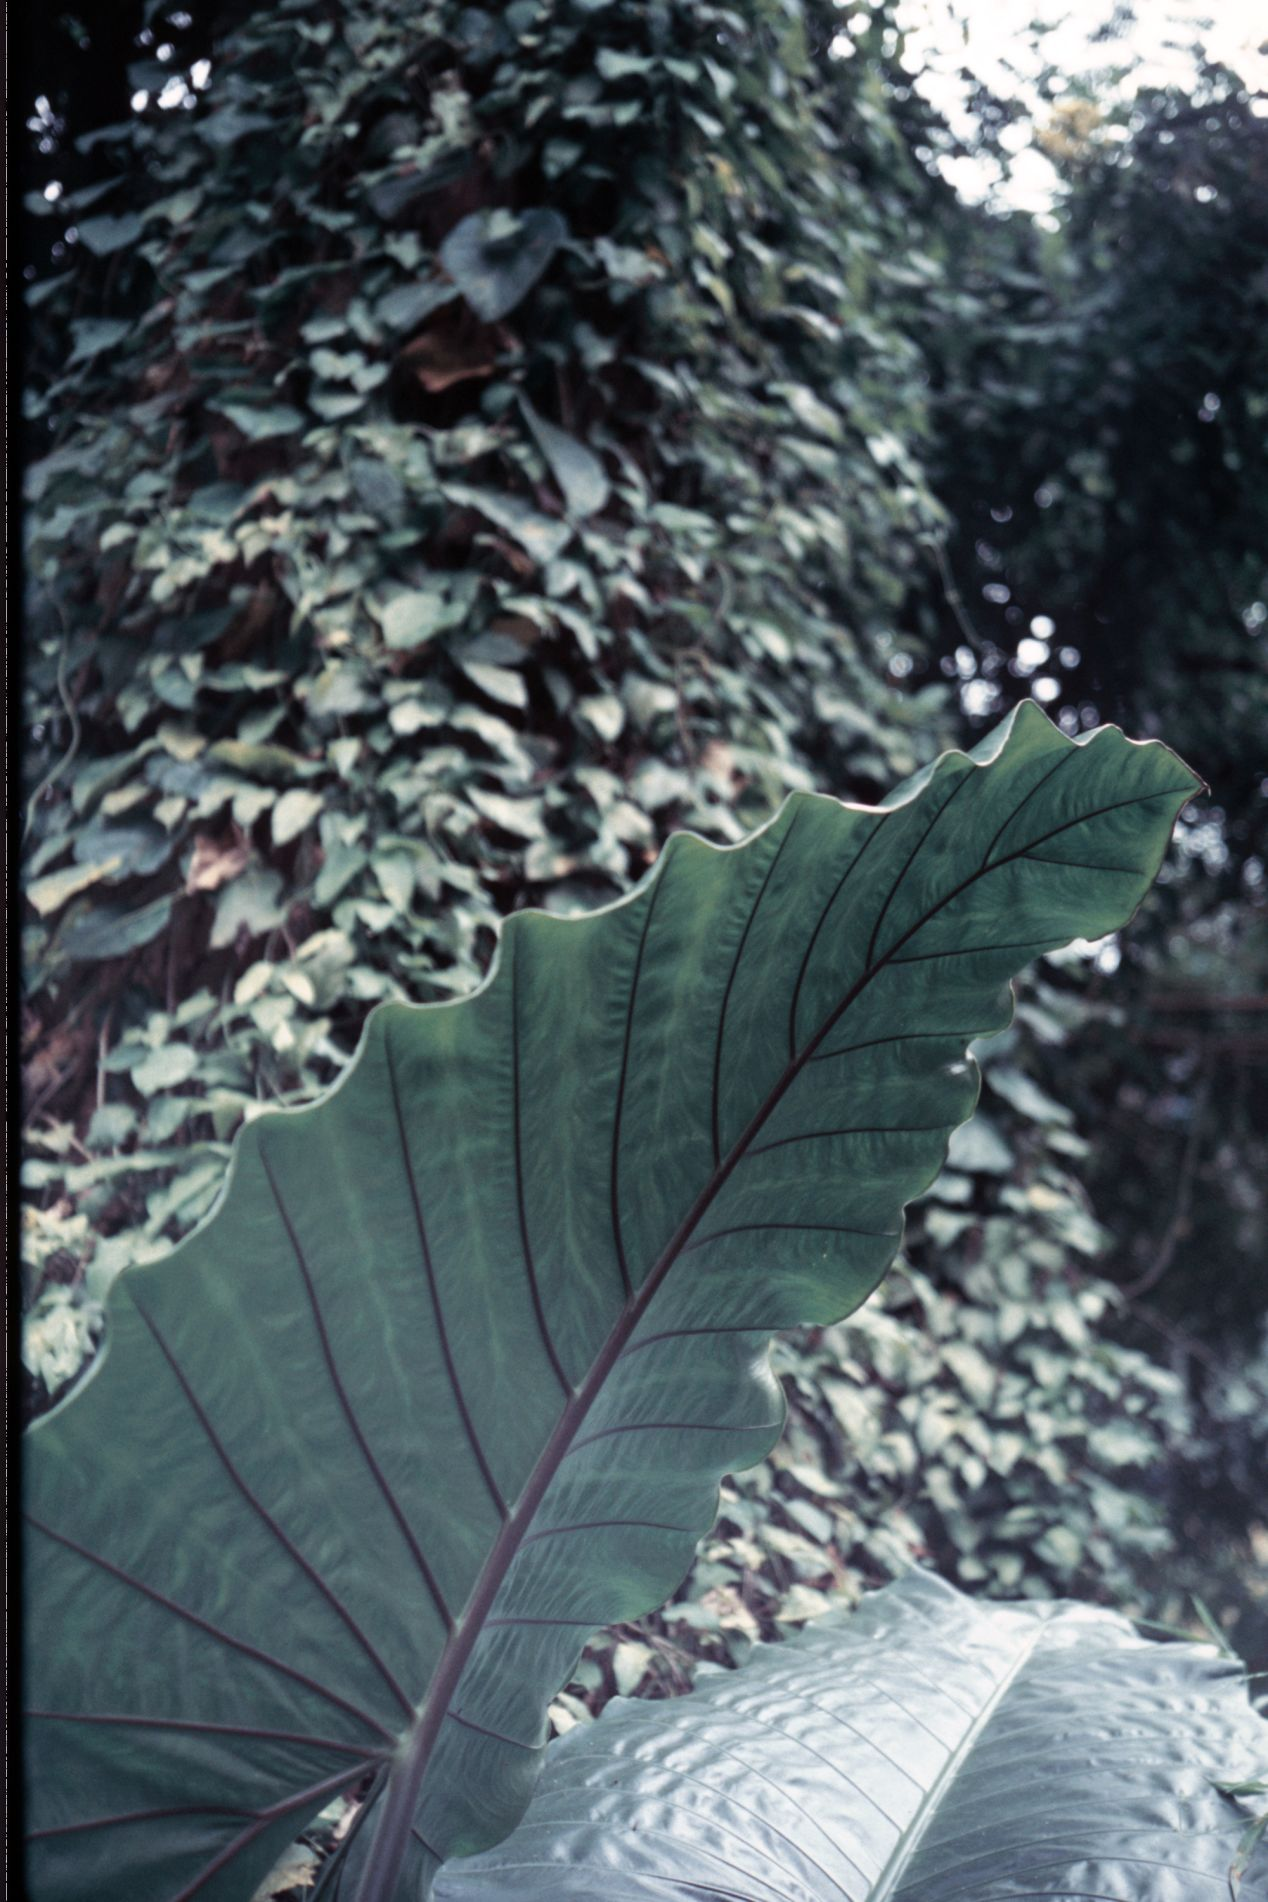 Fujichrome Velvia 100 — discontinued in the US due to environmental regulations.